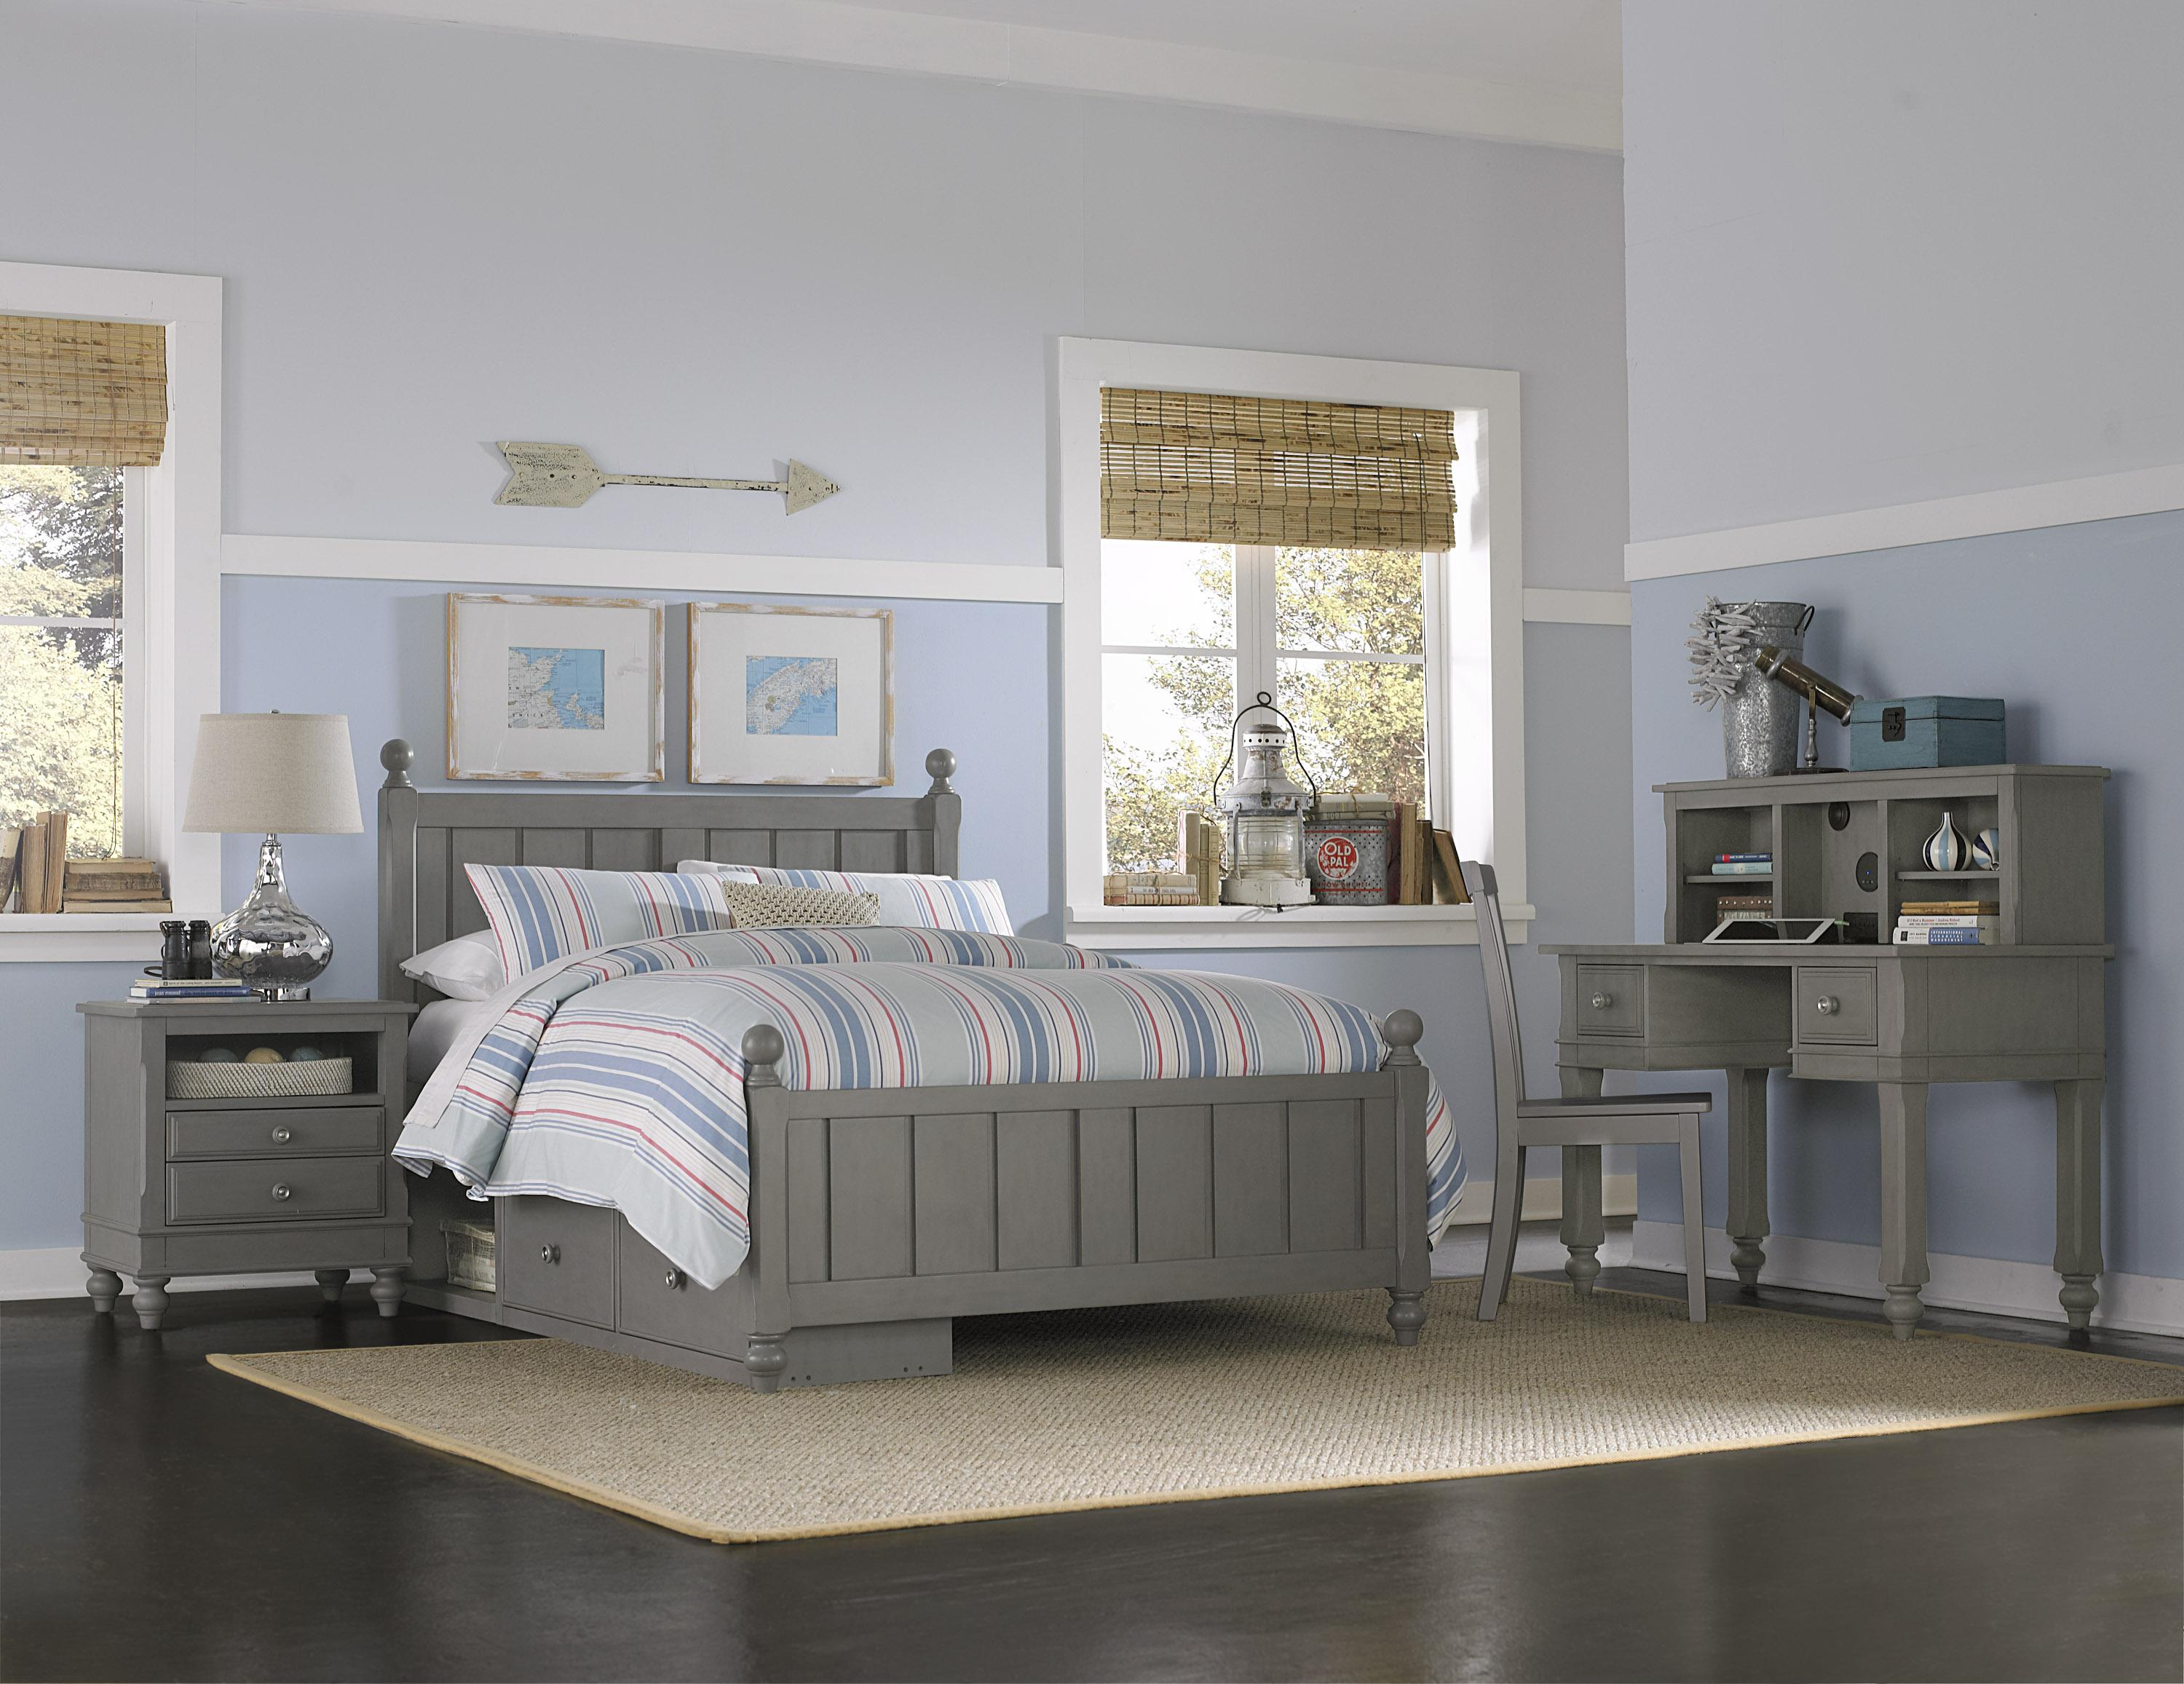 Ne kids lake house full kennedy storage bed group 3 dunk - Bright house bedroom furniture ...